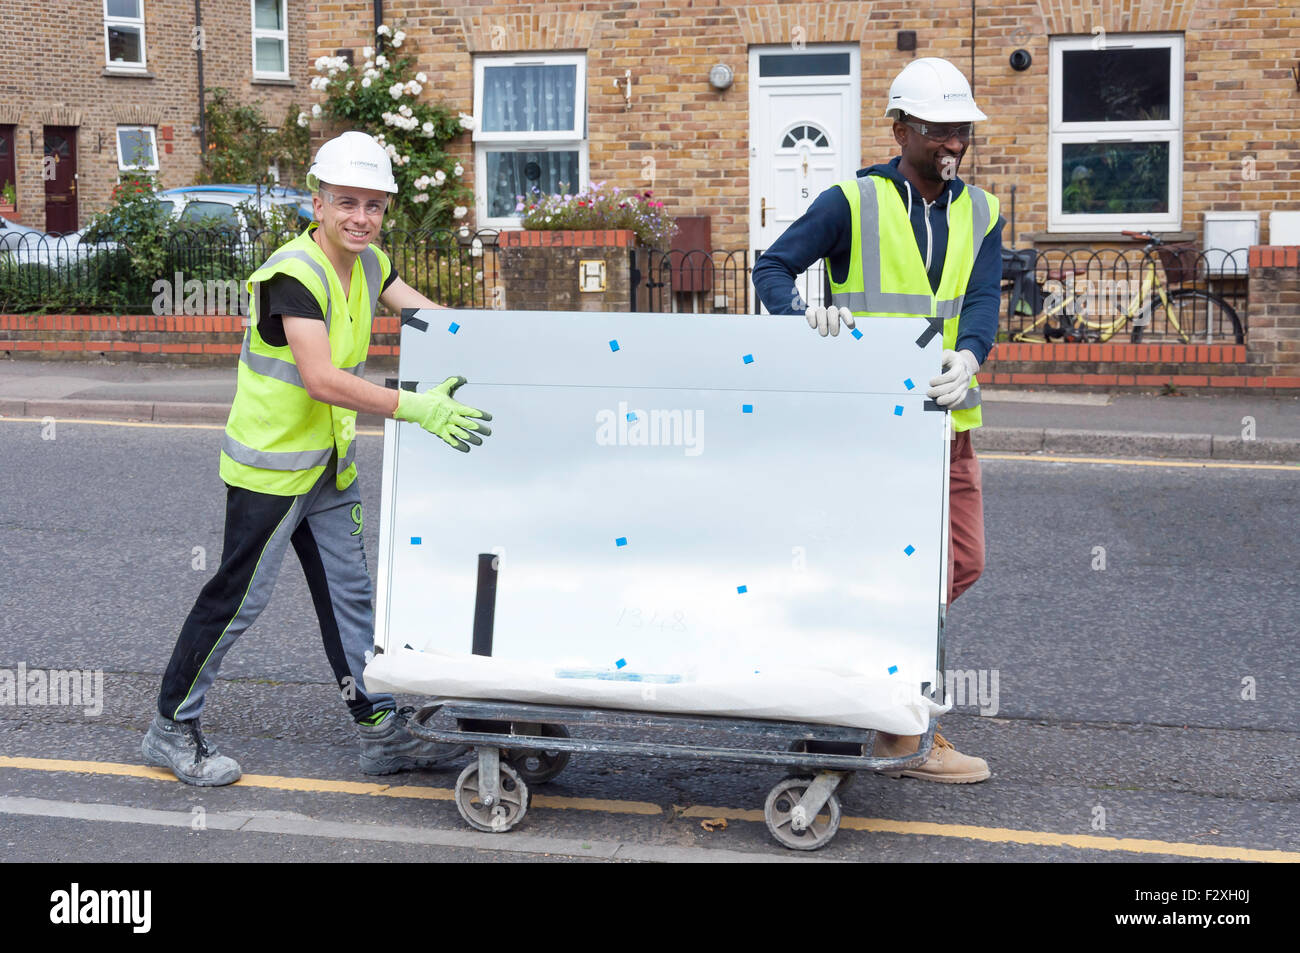 Construction workers transporting sheet of glass, Green Dragon Lane, Brentford, Greater London, England, United - Stock Image